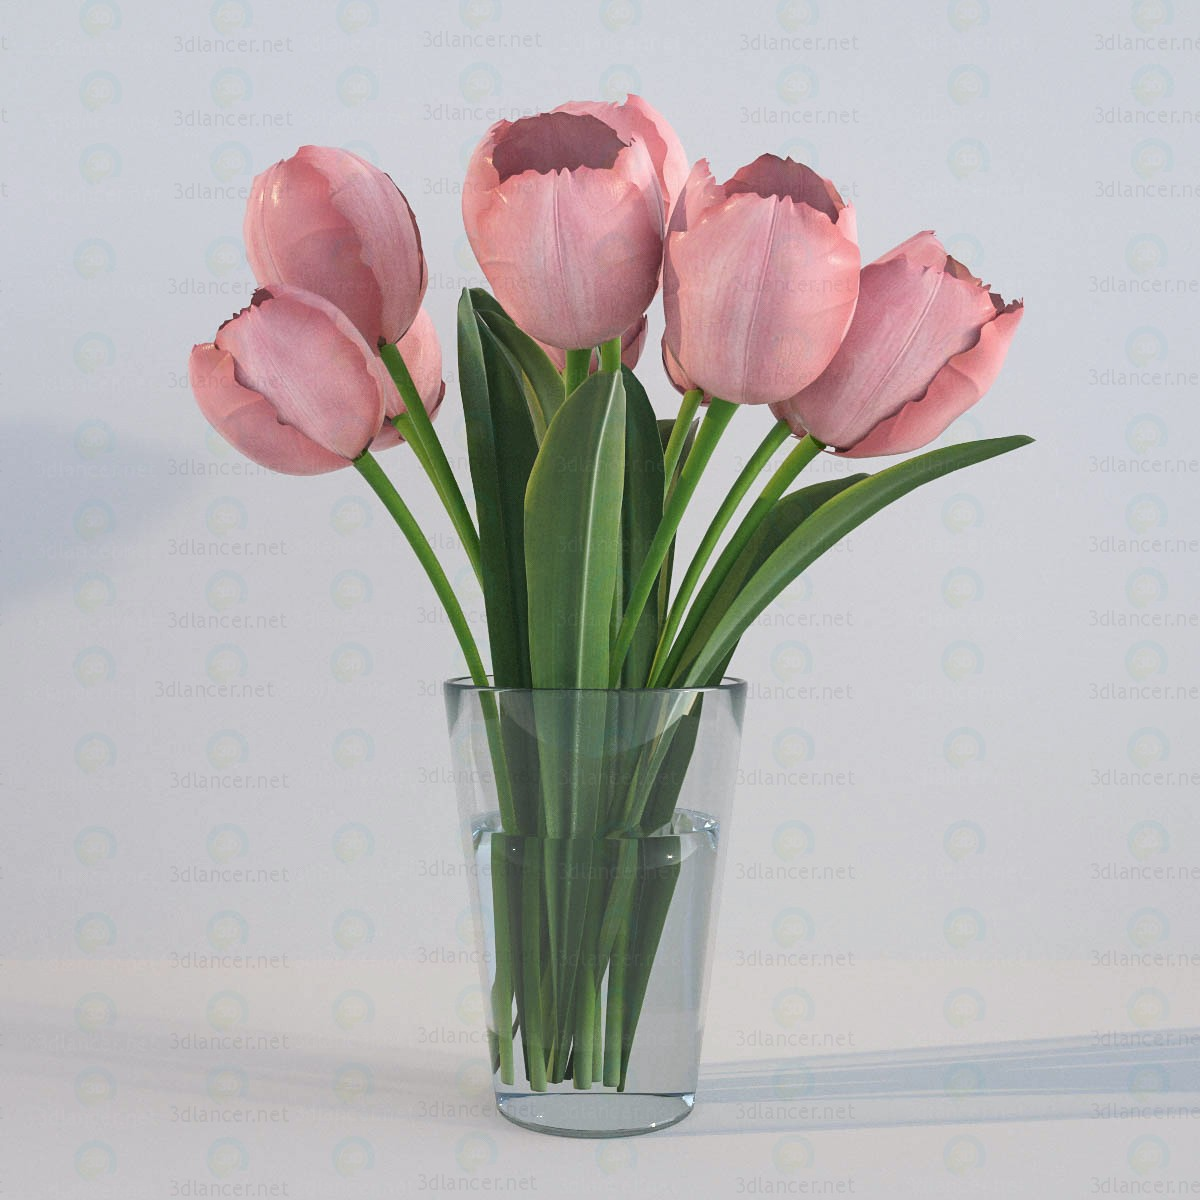 3d model Tulips - preview